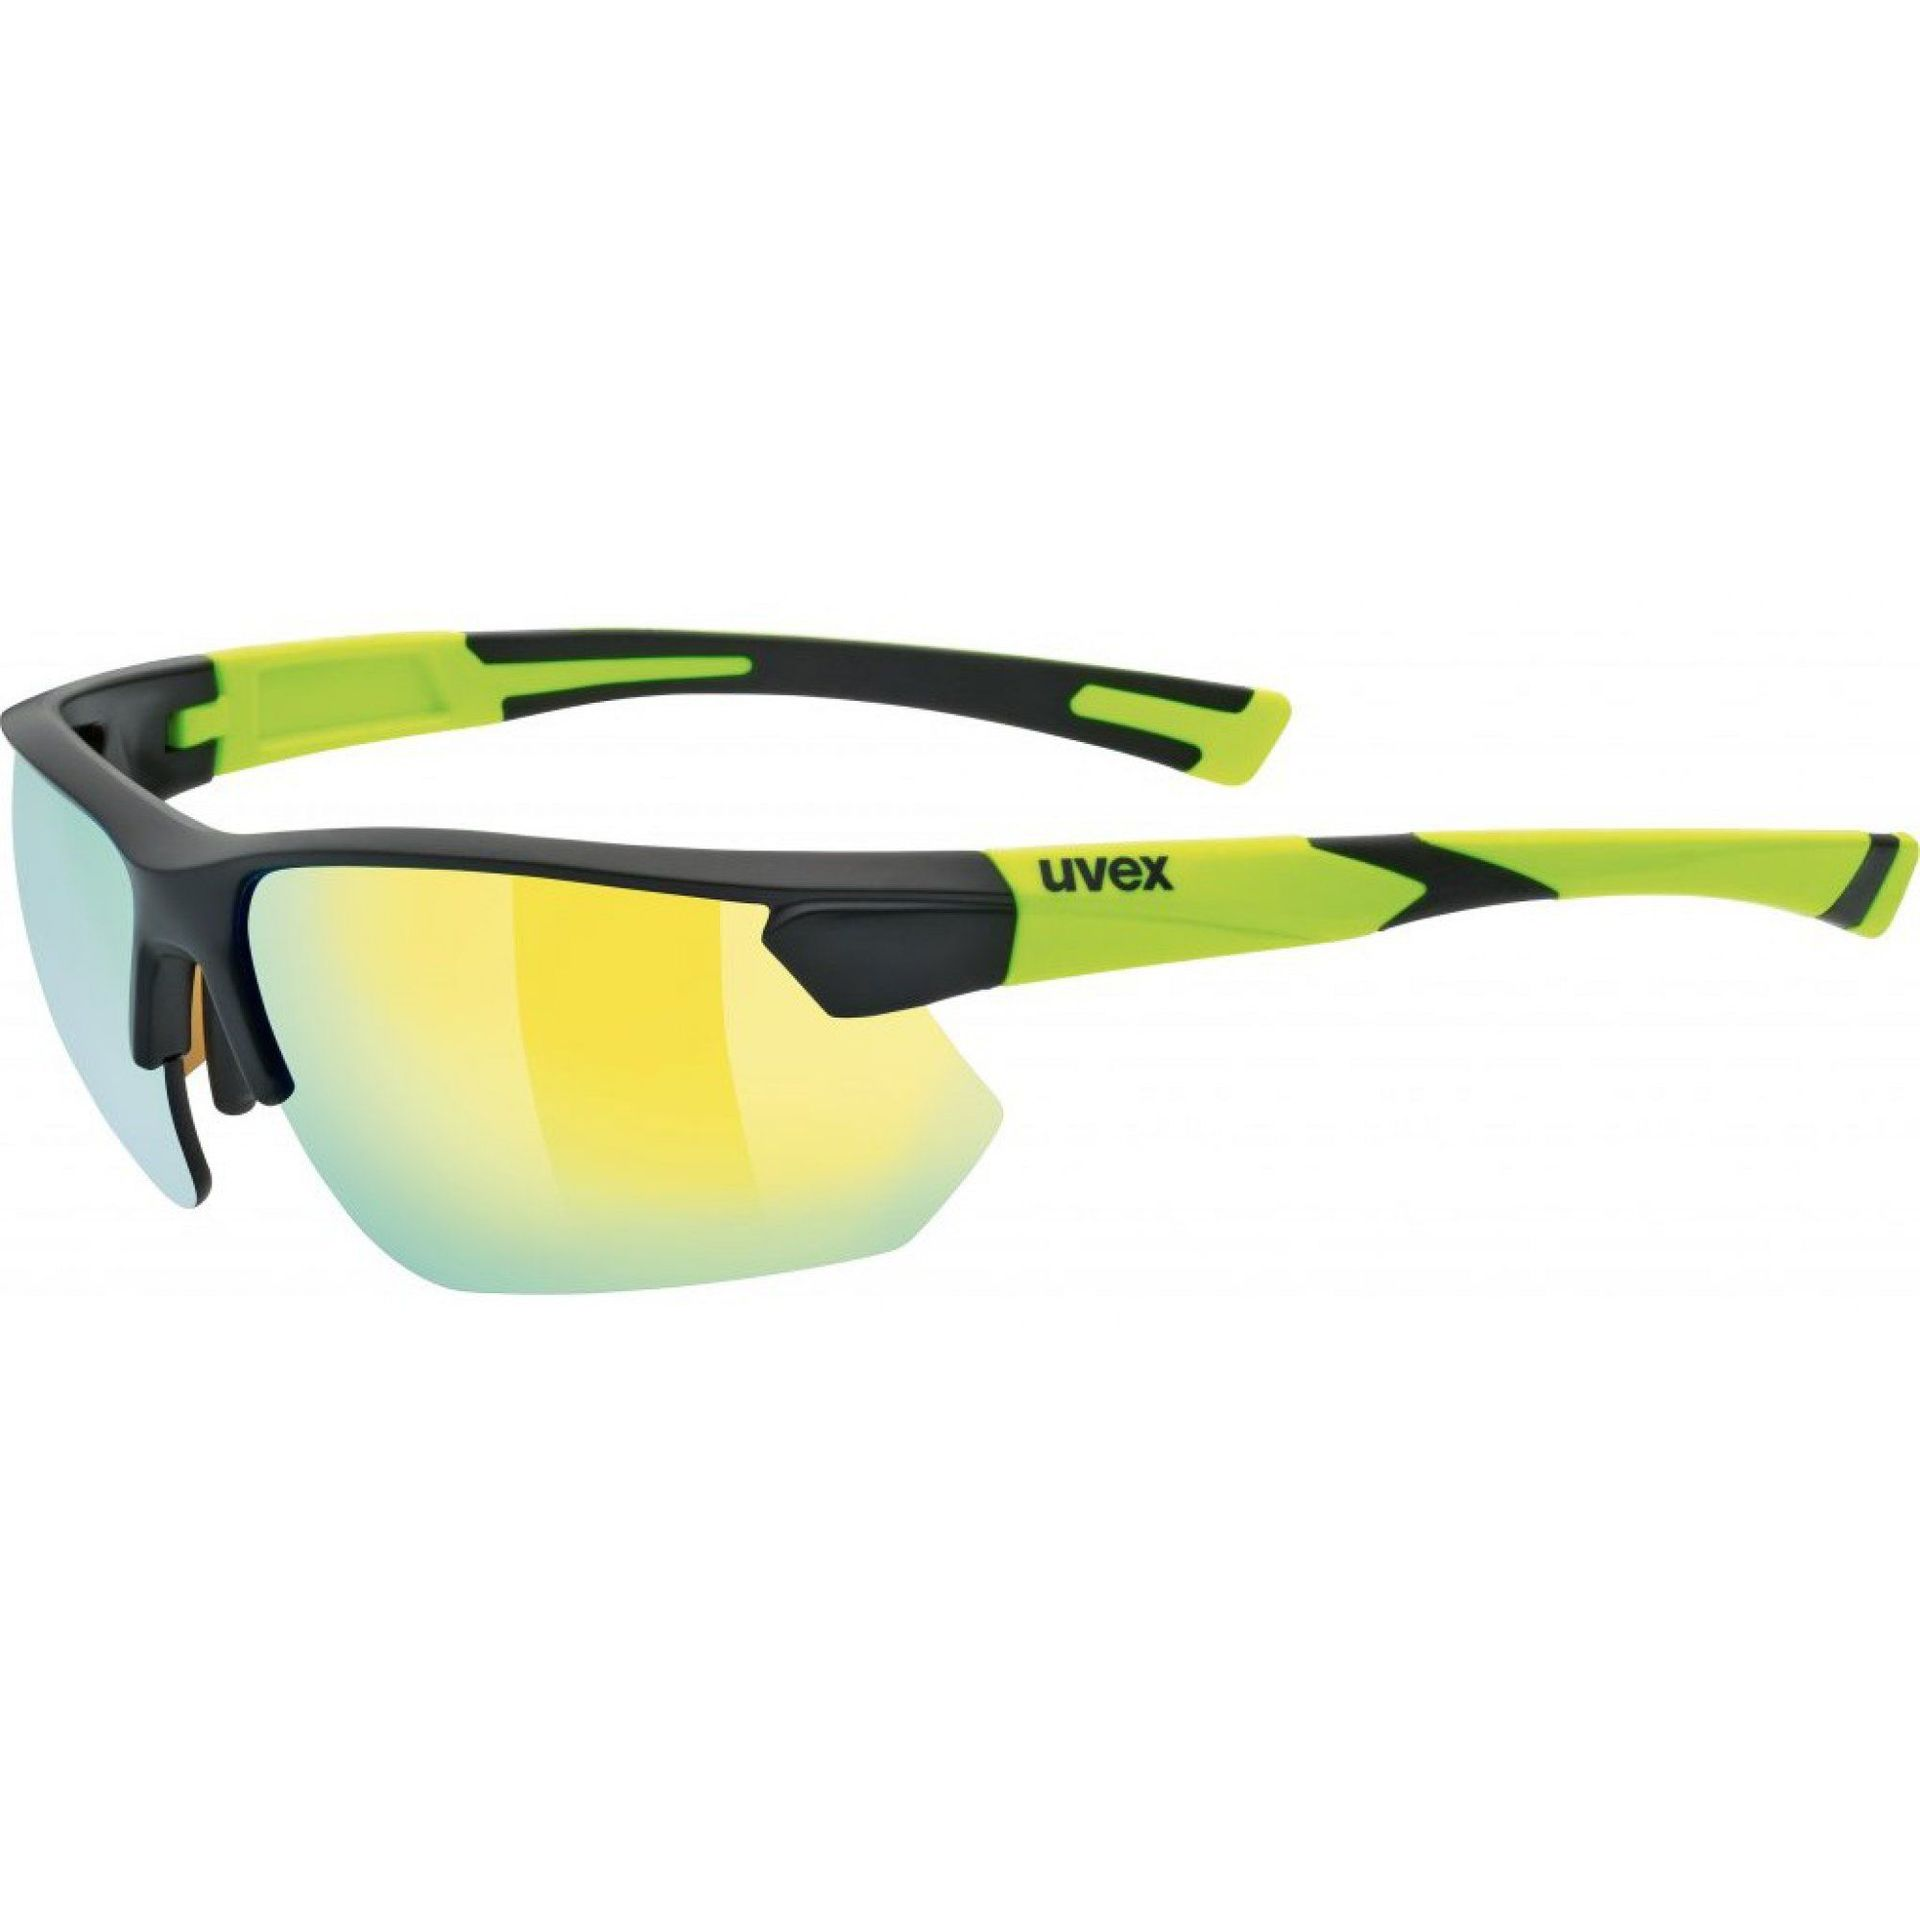 OKULARY UVEX SPORTSTYLE 221 BLACK MAT YELLOW